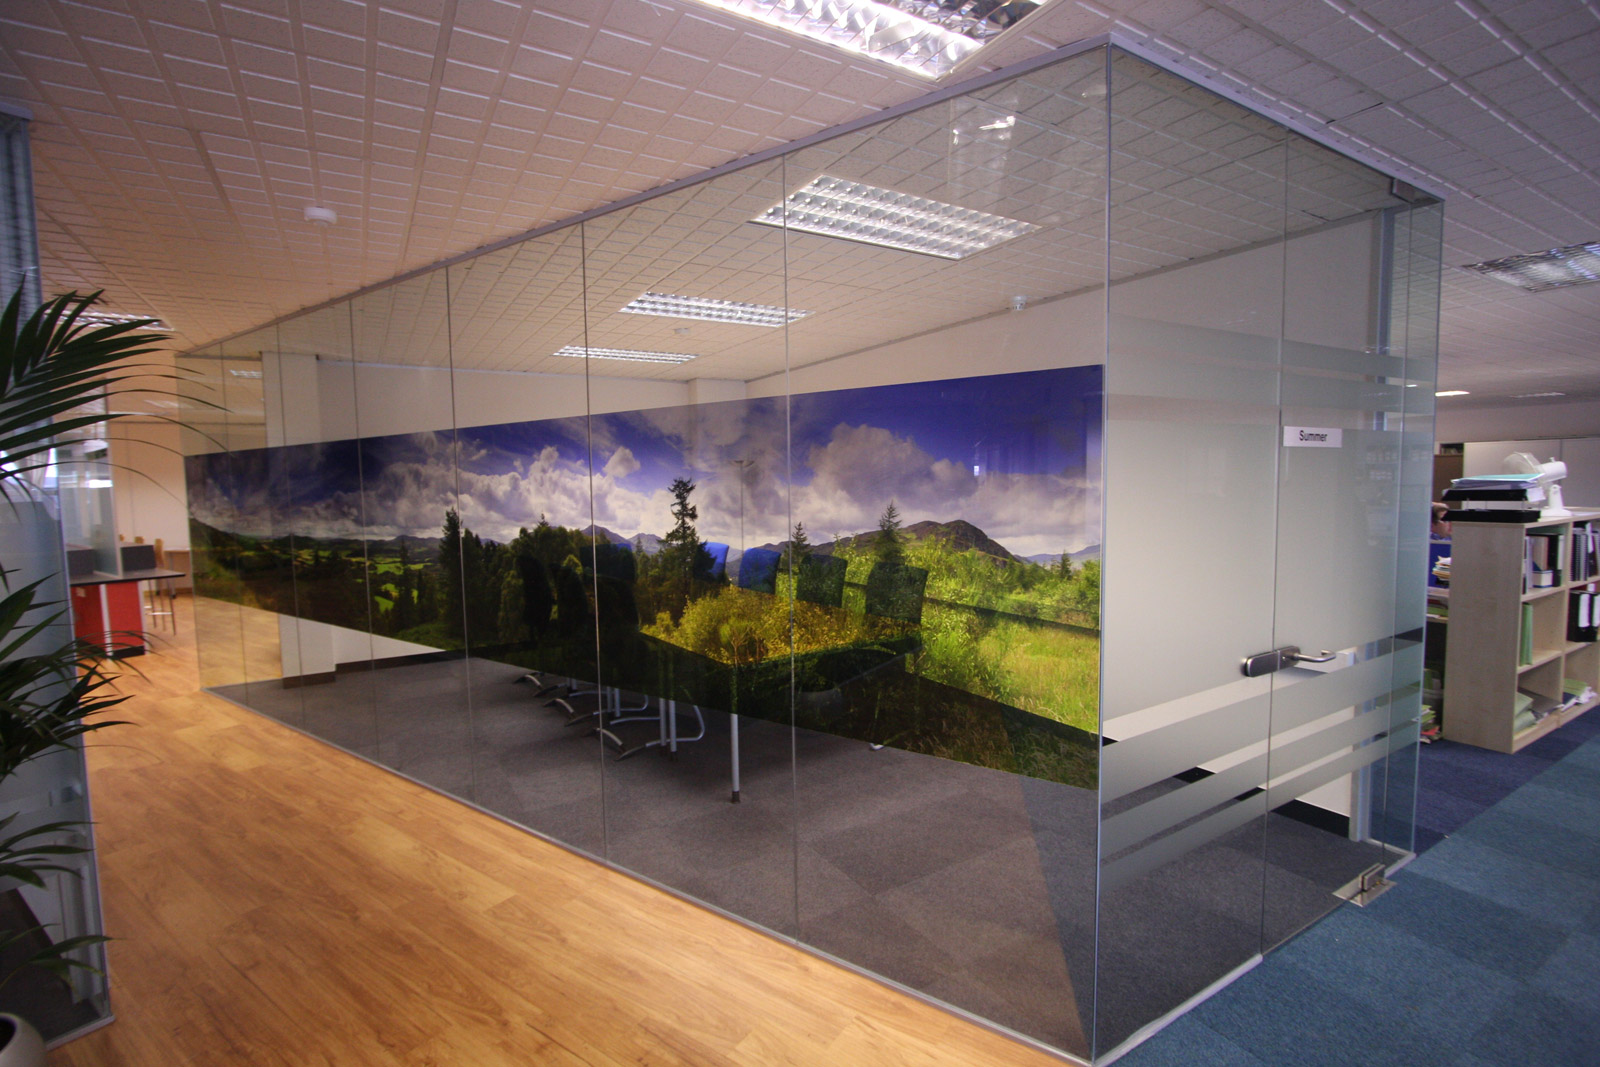 Soundproof Office Partitions - Office Blinds & Glazing Ltd